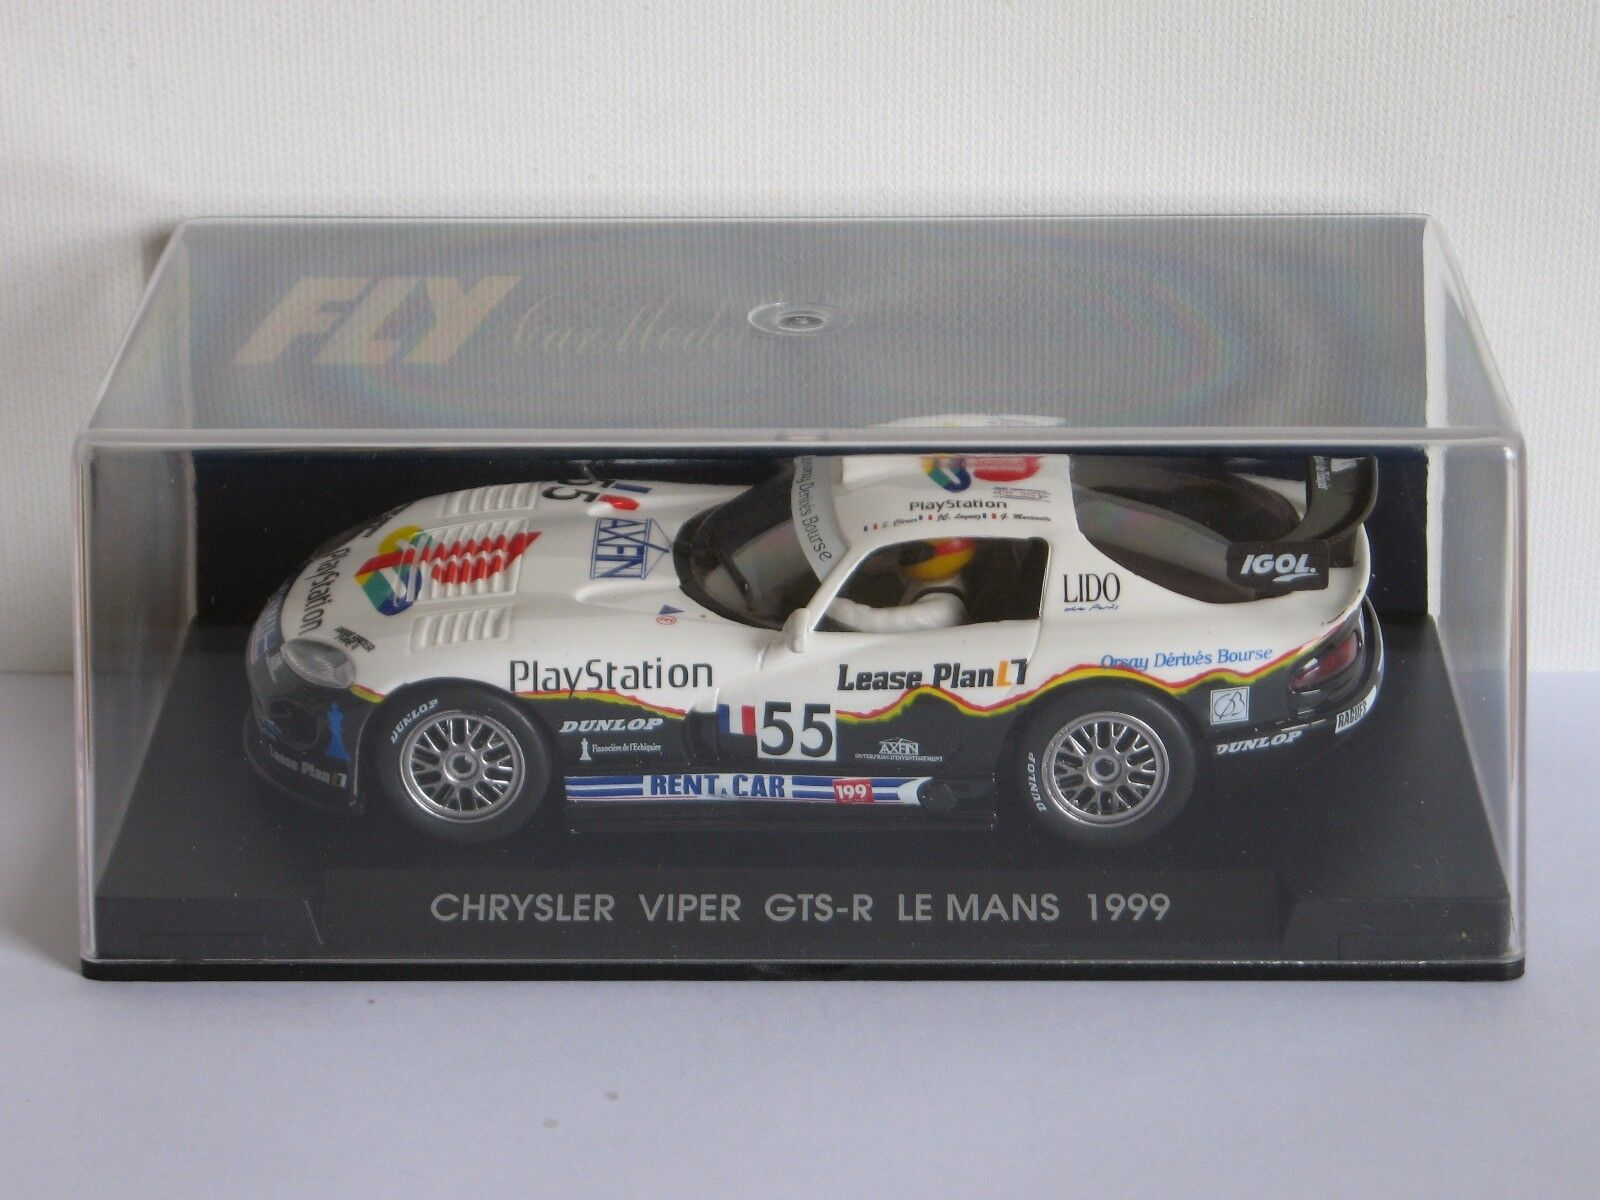 FLY Car Chrysler   Dodge Viper GTS-R Le Mans 1999 - PlayStation - Ref. A85